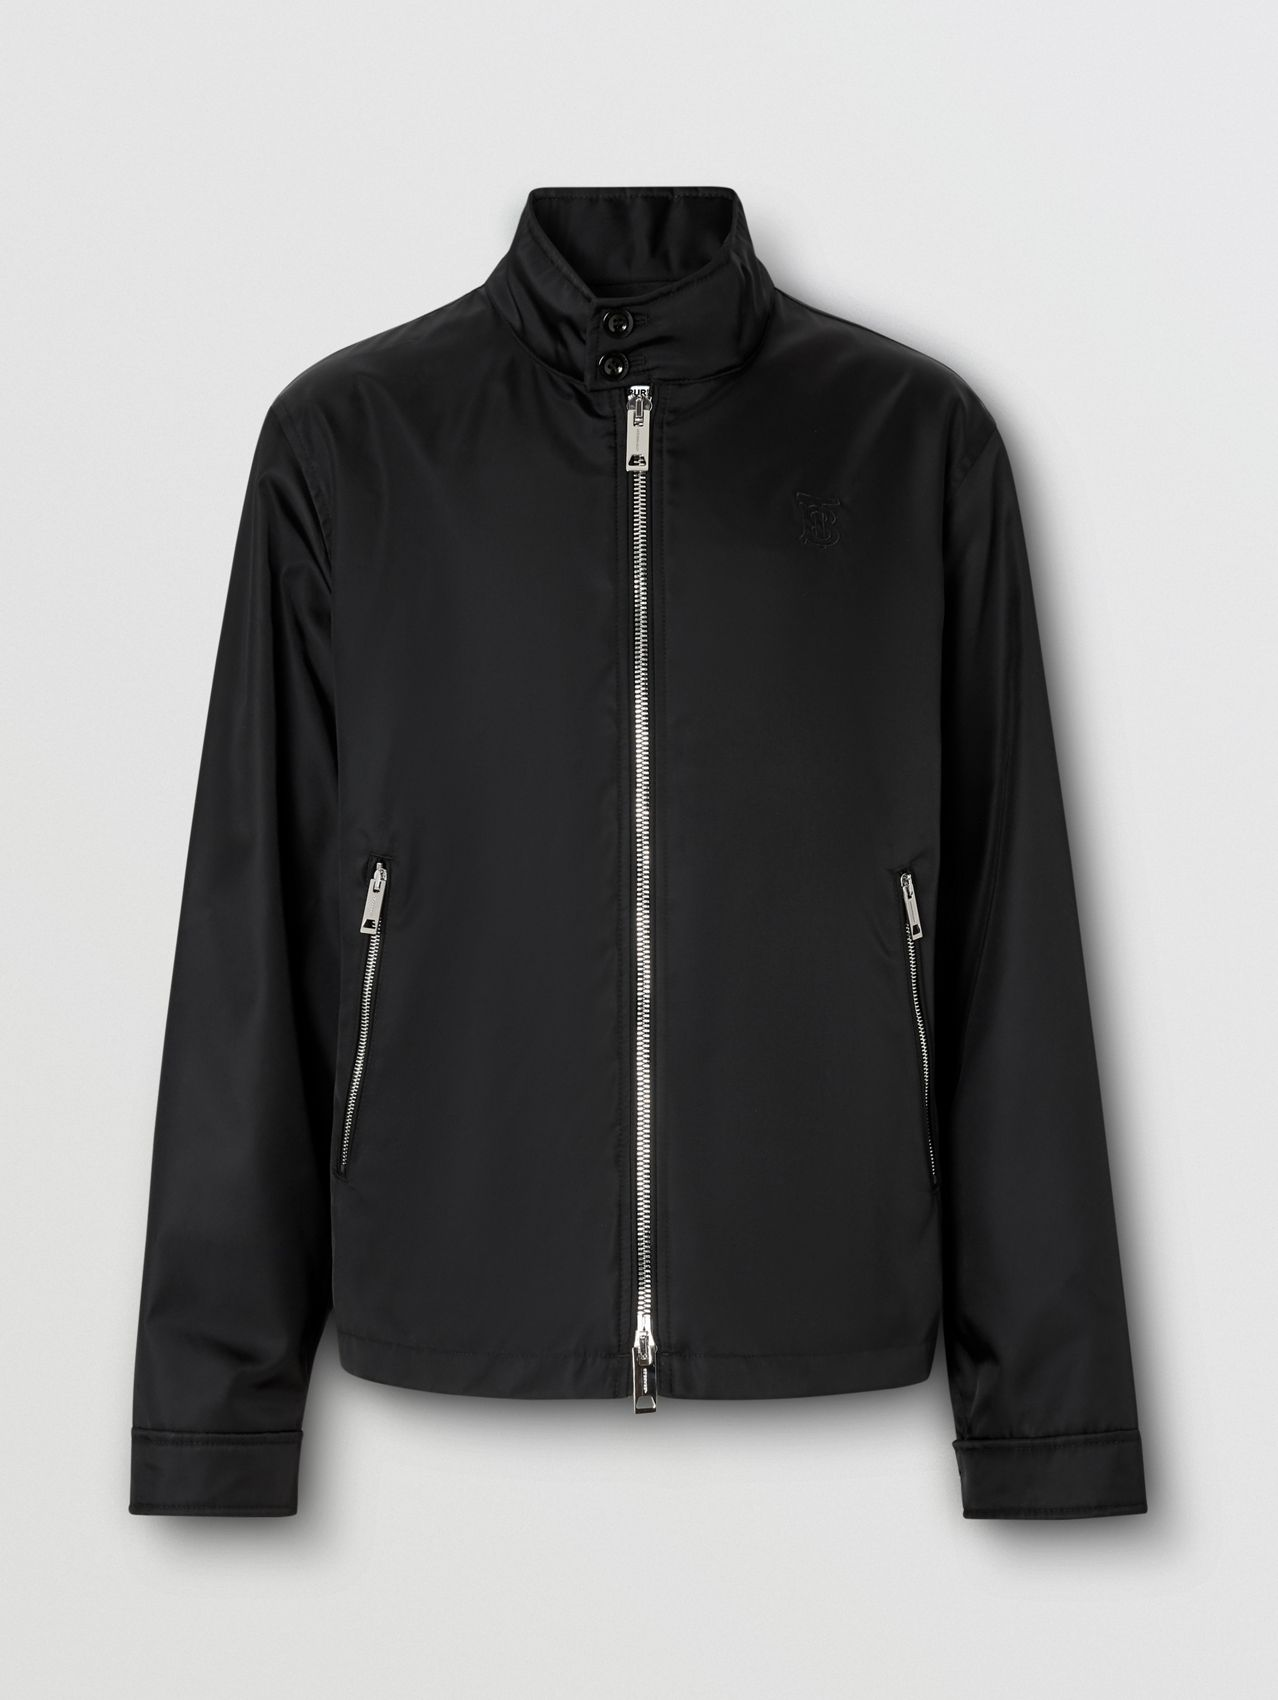 Monogram Motif ECONYL® Jacket in Black